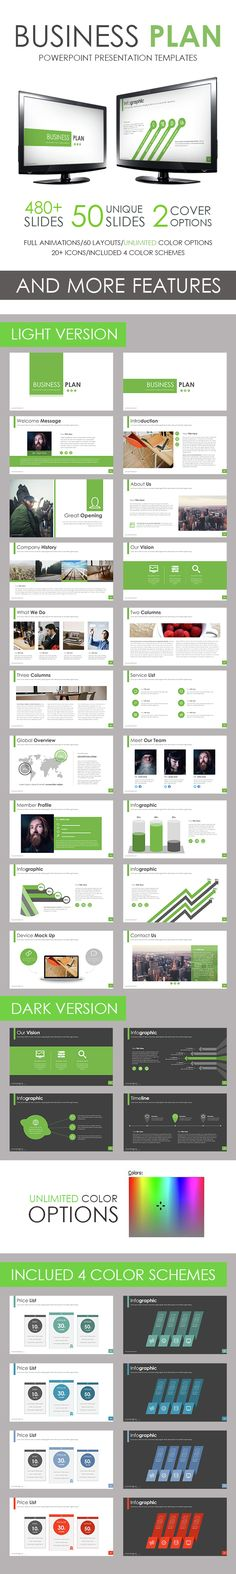 Business Plan PowerPoint Template #slides Download here: http://graphicriver.net/item/business-plan-powerpoint-template/14593000?ref=ksioks